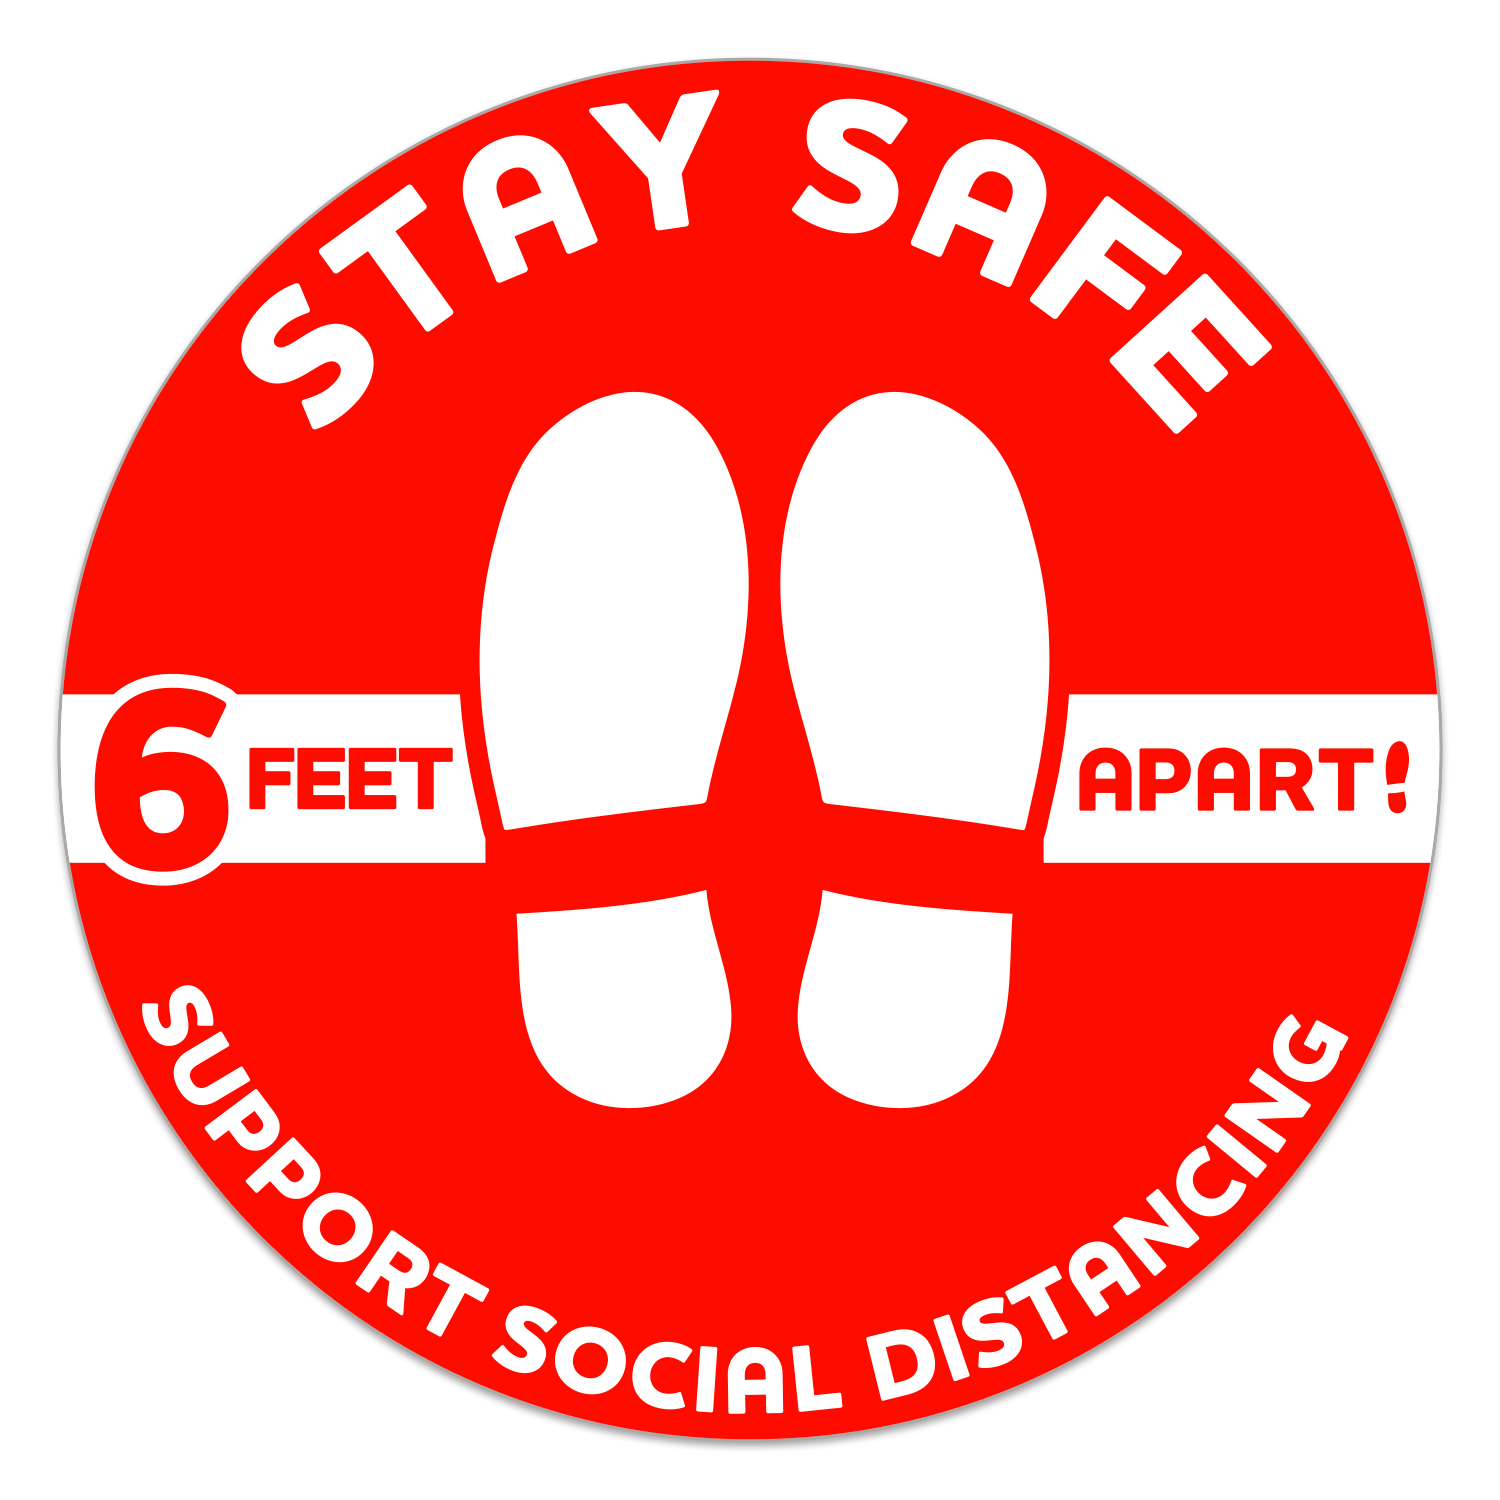 https://www.sswprinting.com/images/products_gallery_images/593602_Stay-Safe-Floor-Decals_hi-res.png